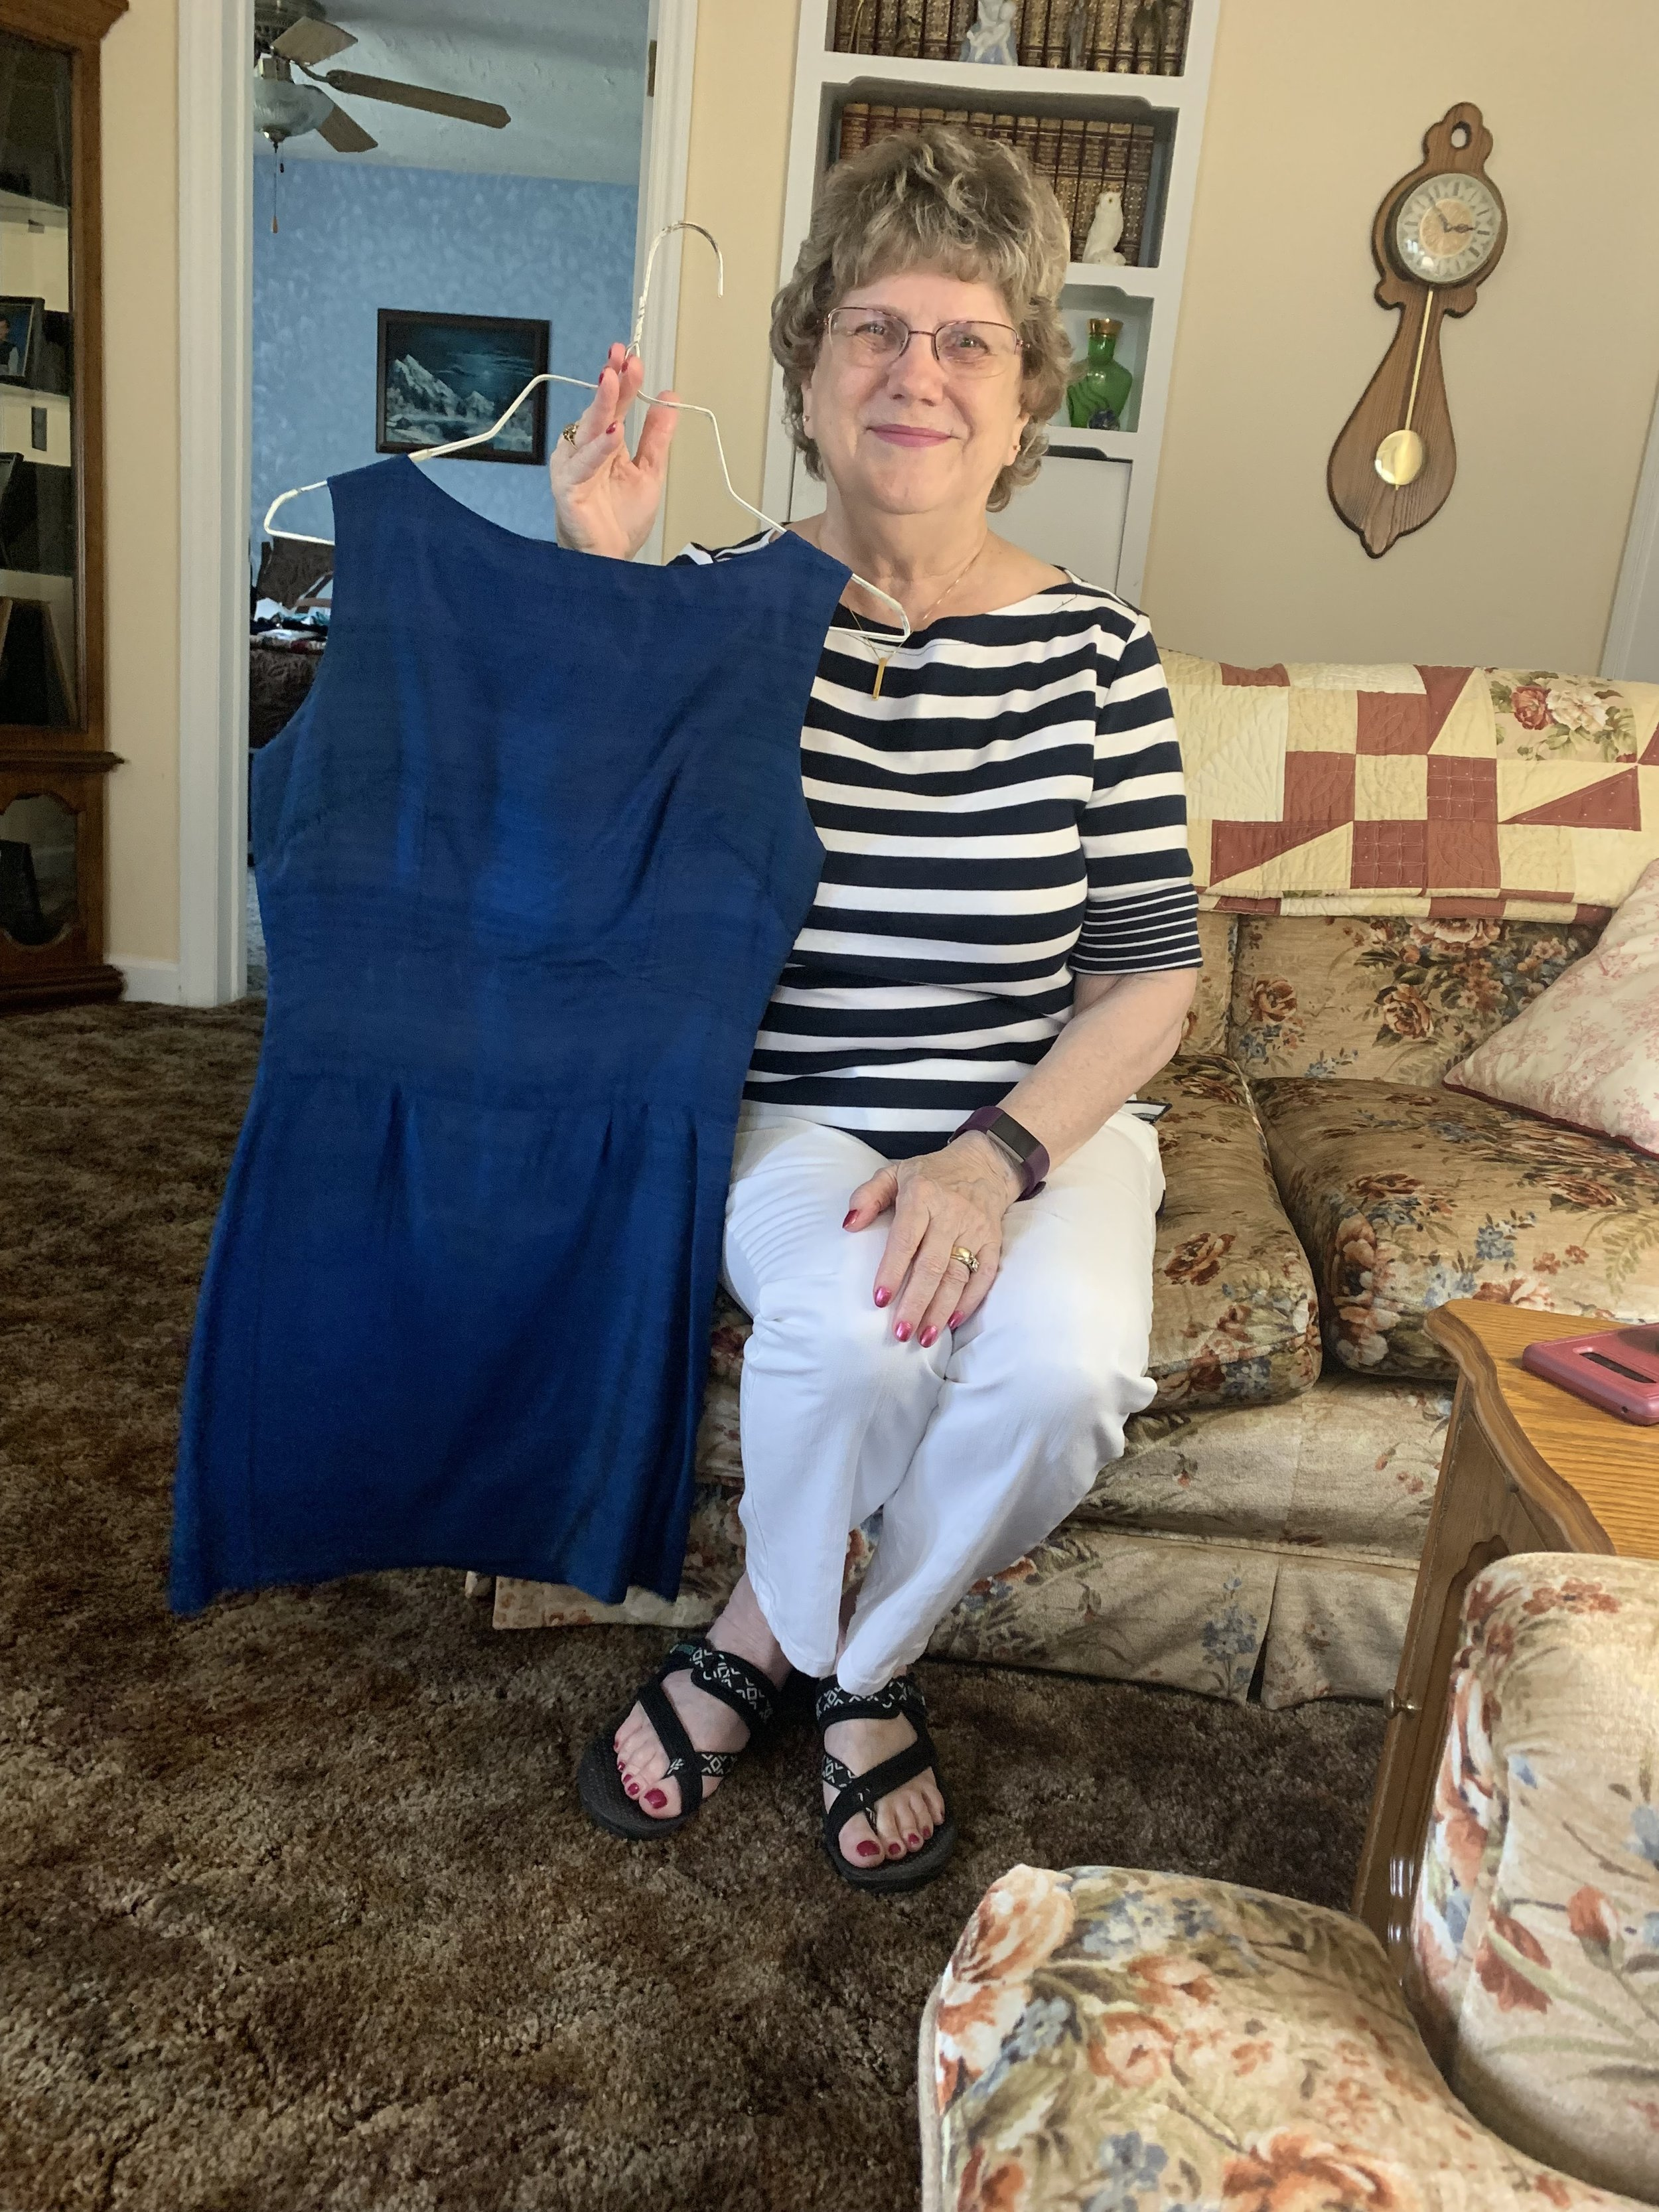 Mary shows the dress her husband handmade for her while in Thailand. The outfit dates back to 1967: the year Mary waited for her newly betrothed to return from the Vietnam War.  Photo submitted by Allie Jennerjahn